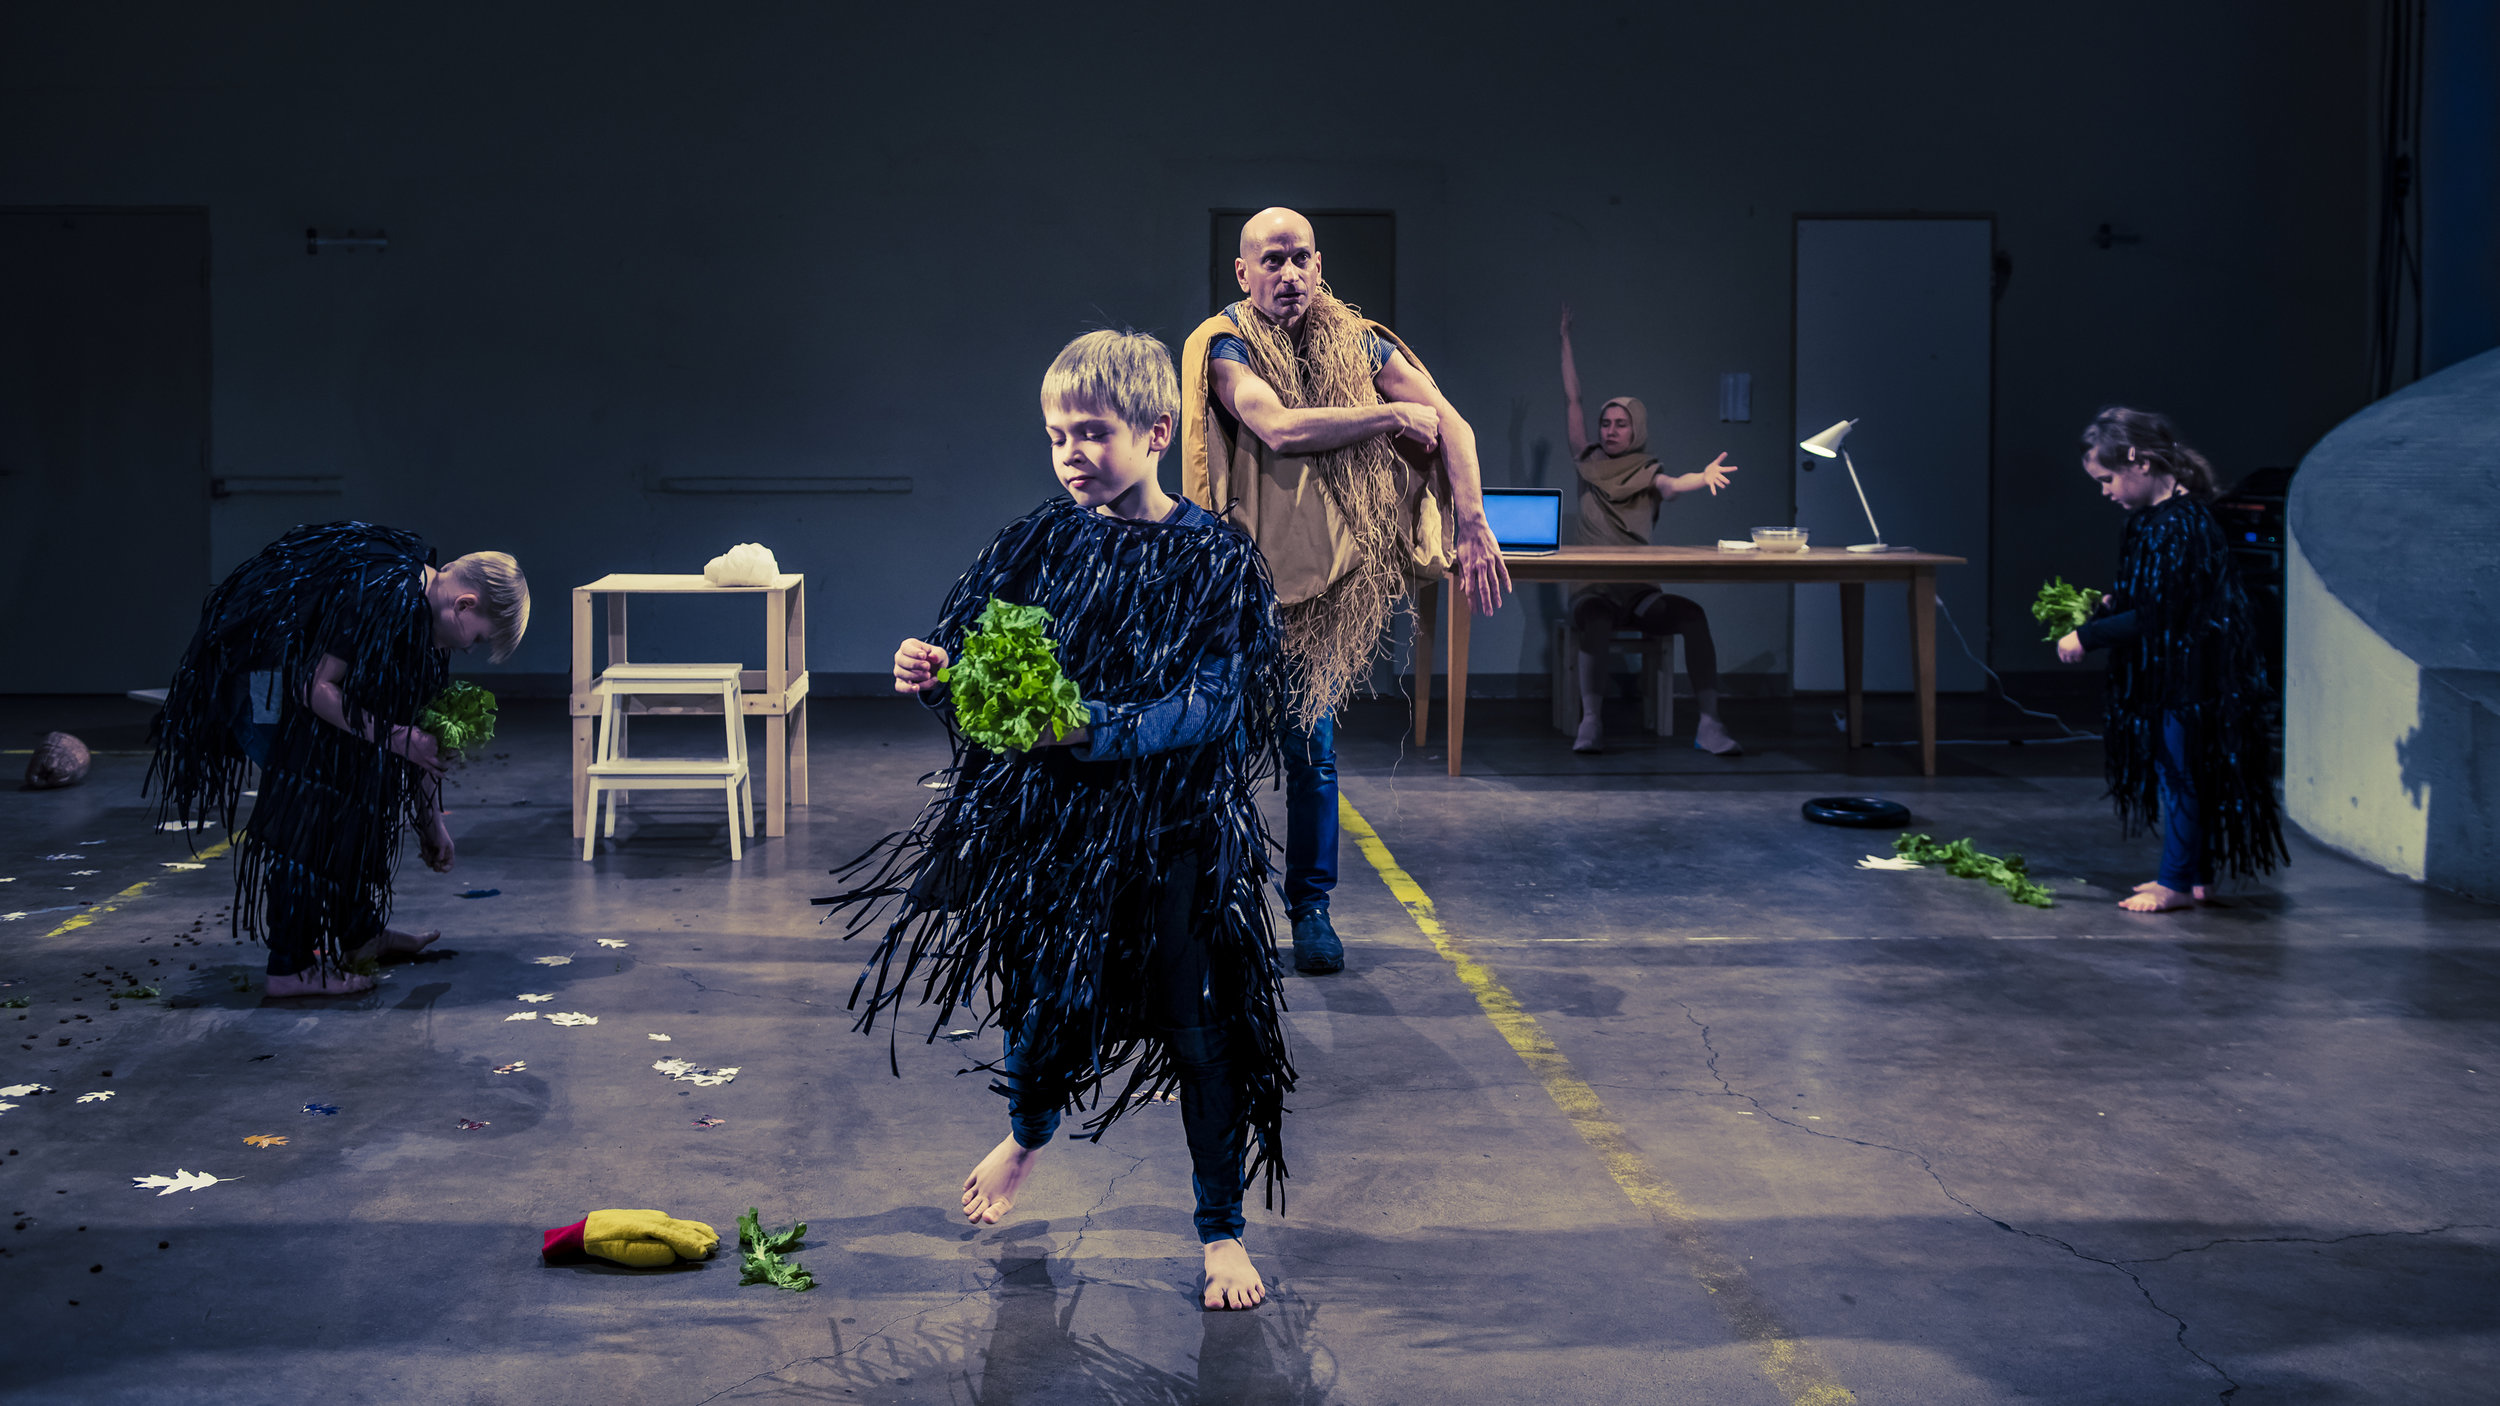 Photo by Saara Autere.  Scarecrow  (2018) by  Every house has a door , directed by Lin Hixson, performed at Mad House, Helsinki, Finland. Pictured left to right: Ahti Leppänen, Colin Hunter, Matthew Goulish, Essi Kausalainen, Emelie Hunter.